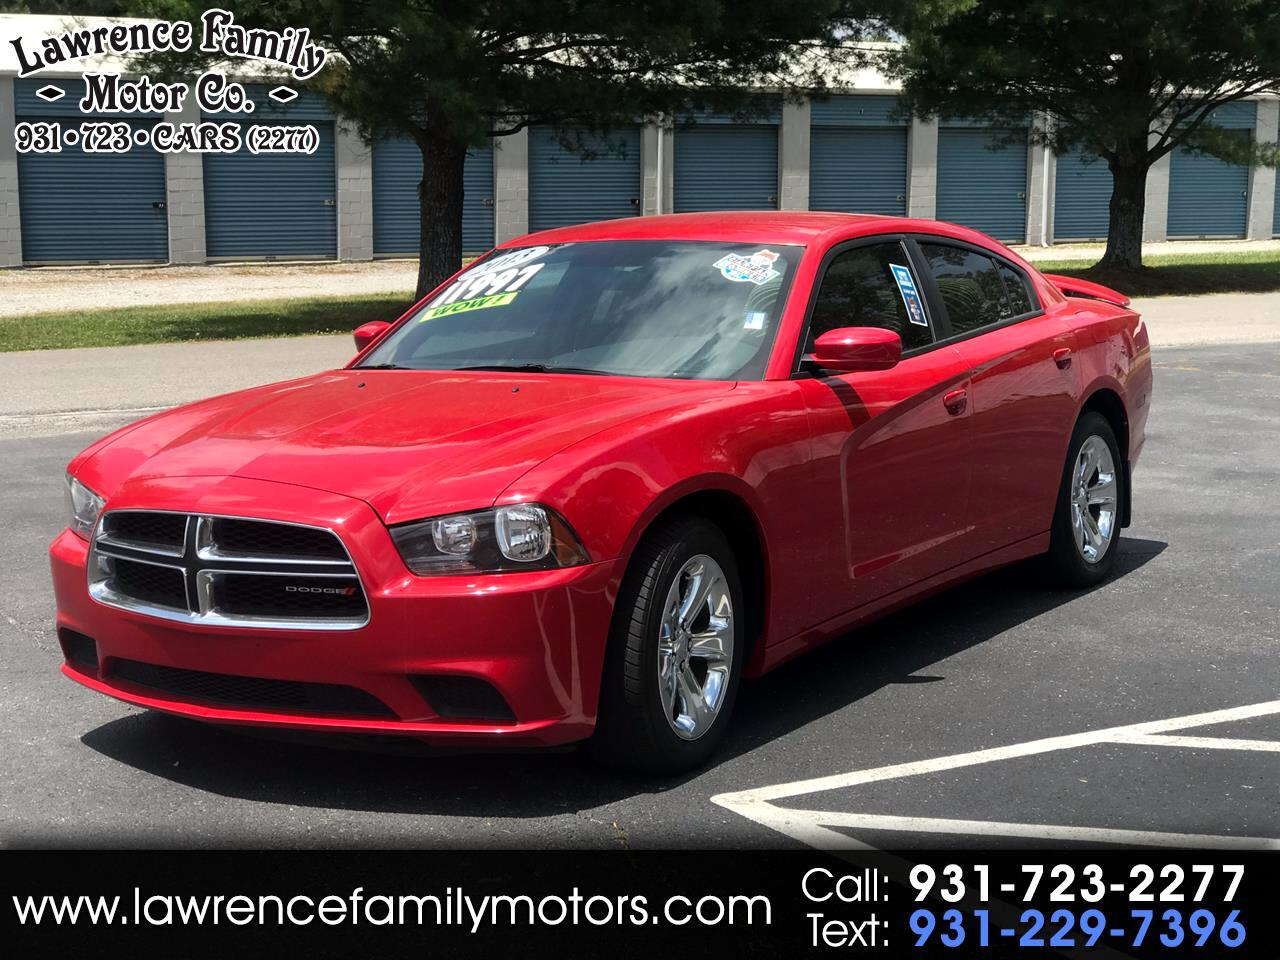 2013 Dodge Charger 4dr Sdn SE RWD